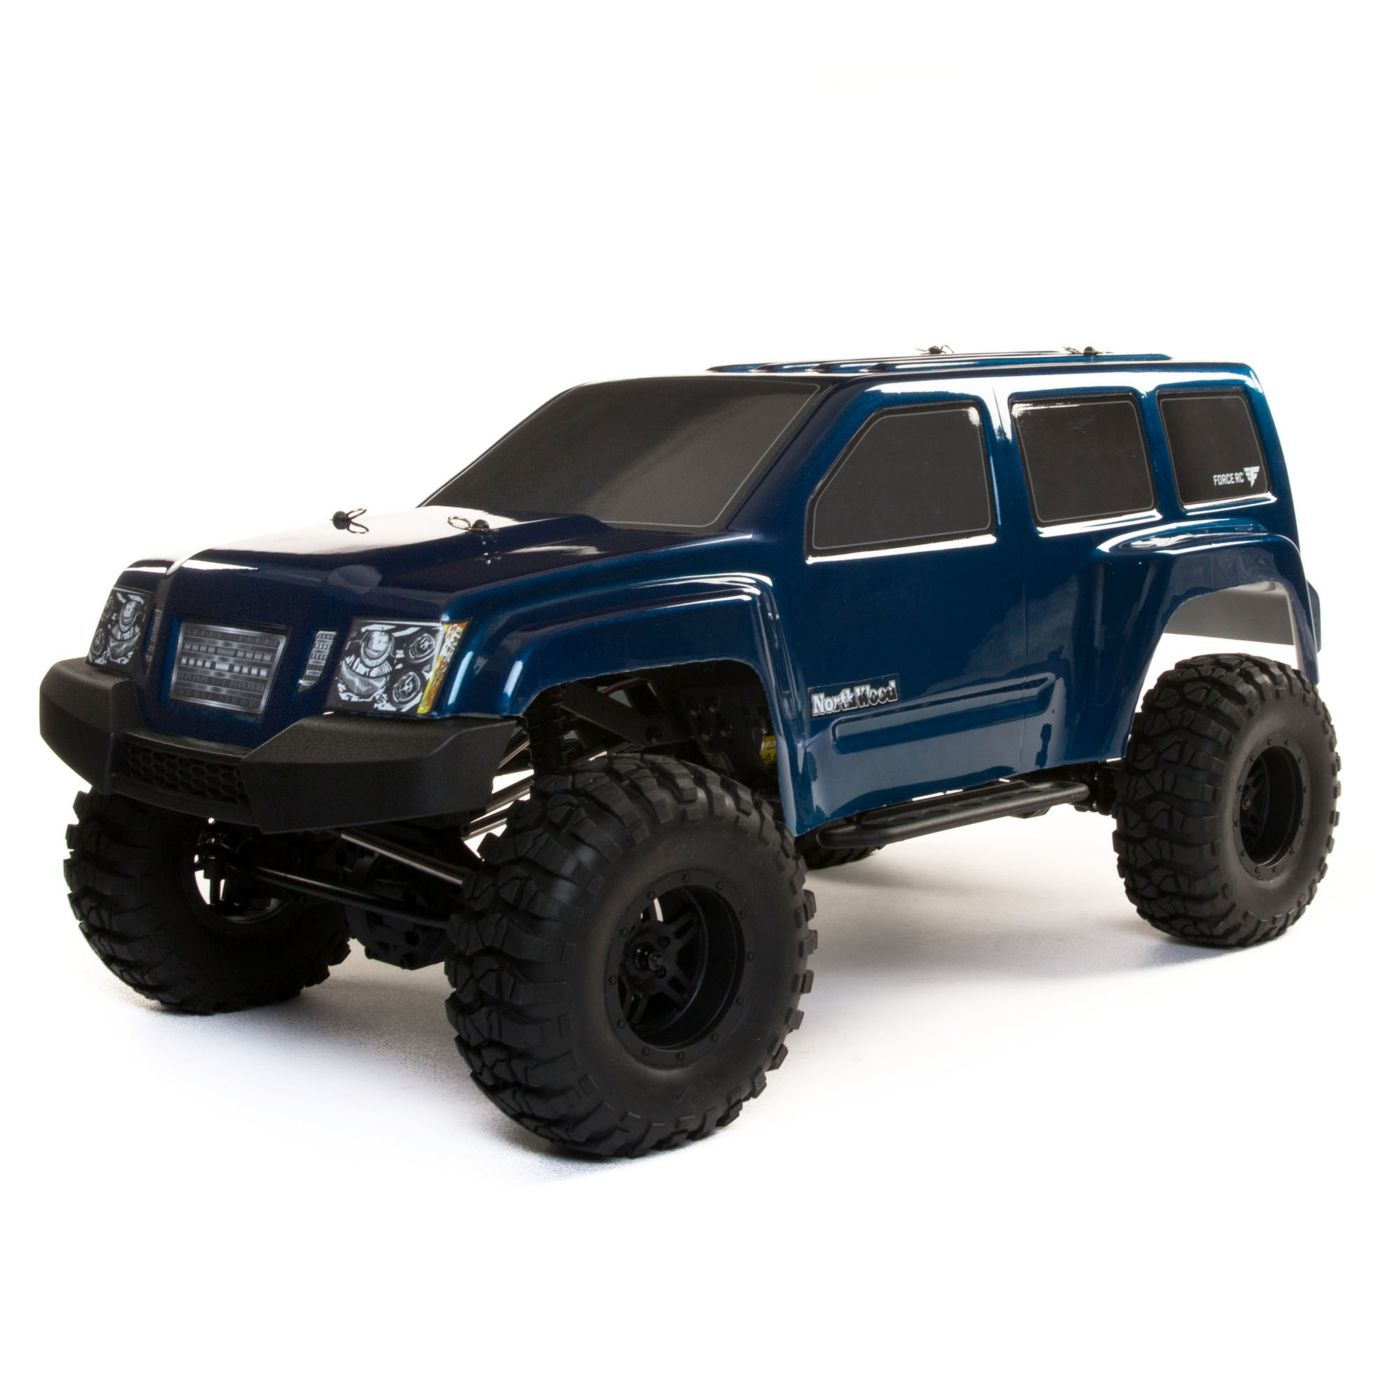 Begin Your R/C Crawler Journey with the Force RC Northwood 2.2 Scaler